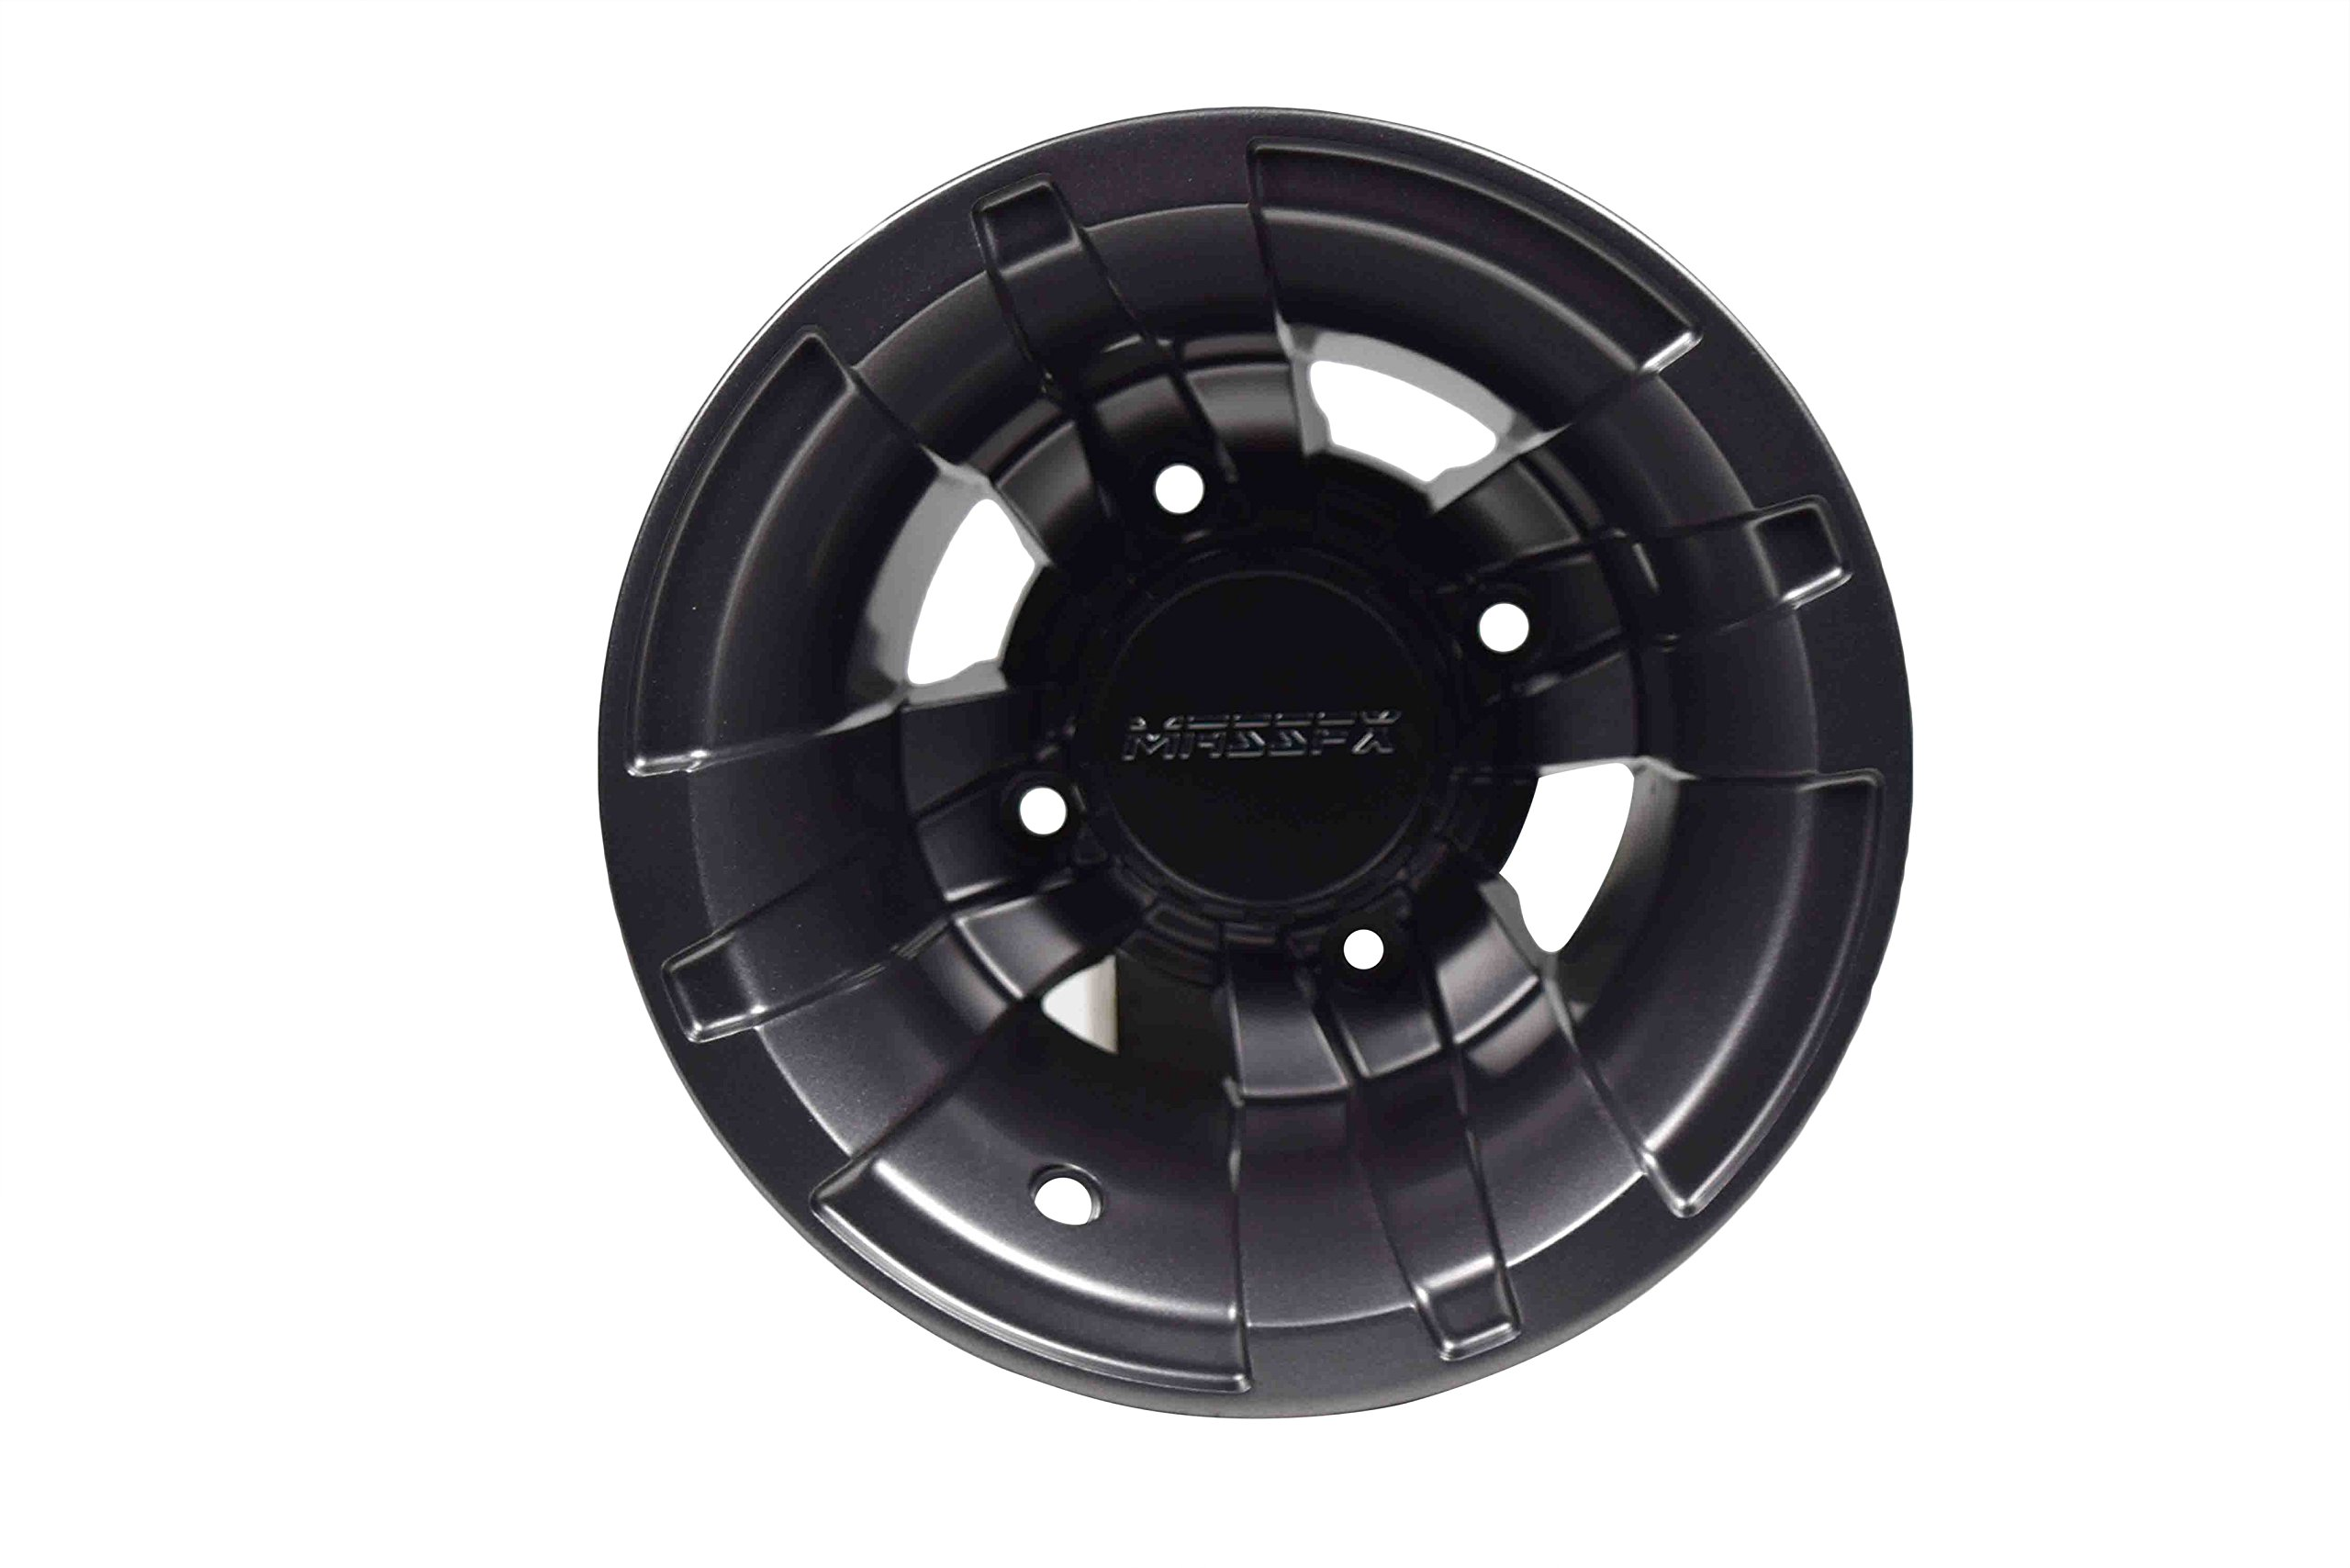 MASSFX 9x8 4/115 3+2 Offset Gun Metal ATV 9'' Rim Yamaha Single Rear Wheel Banshee 350 (1987-2006) Raptor 700 (2006-Present)